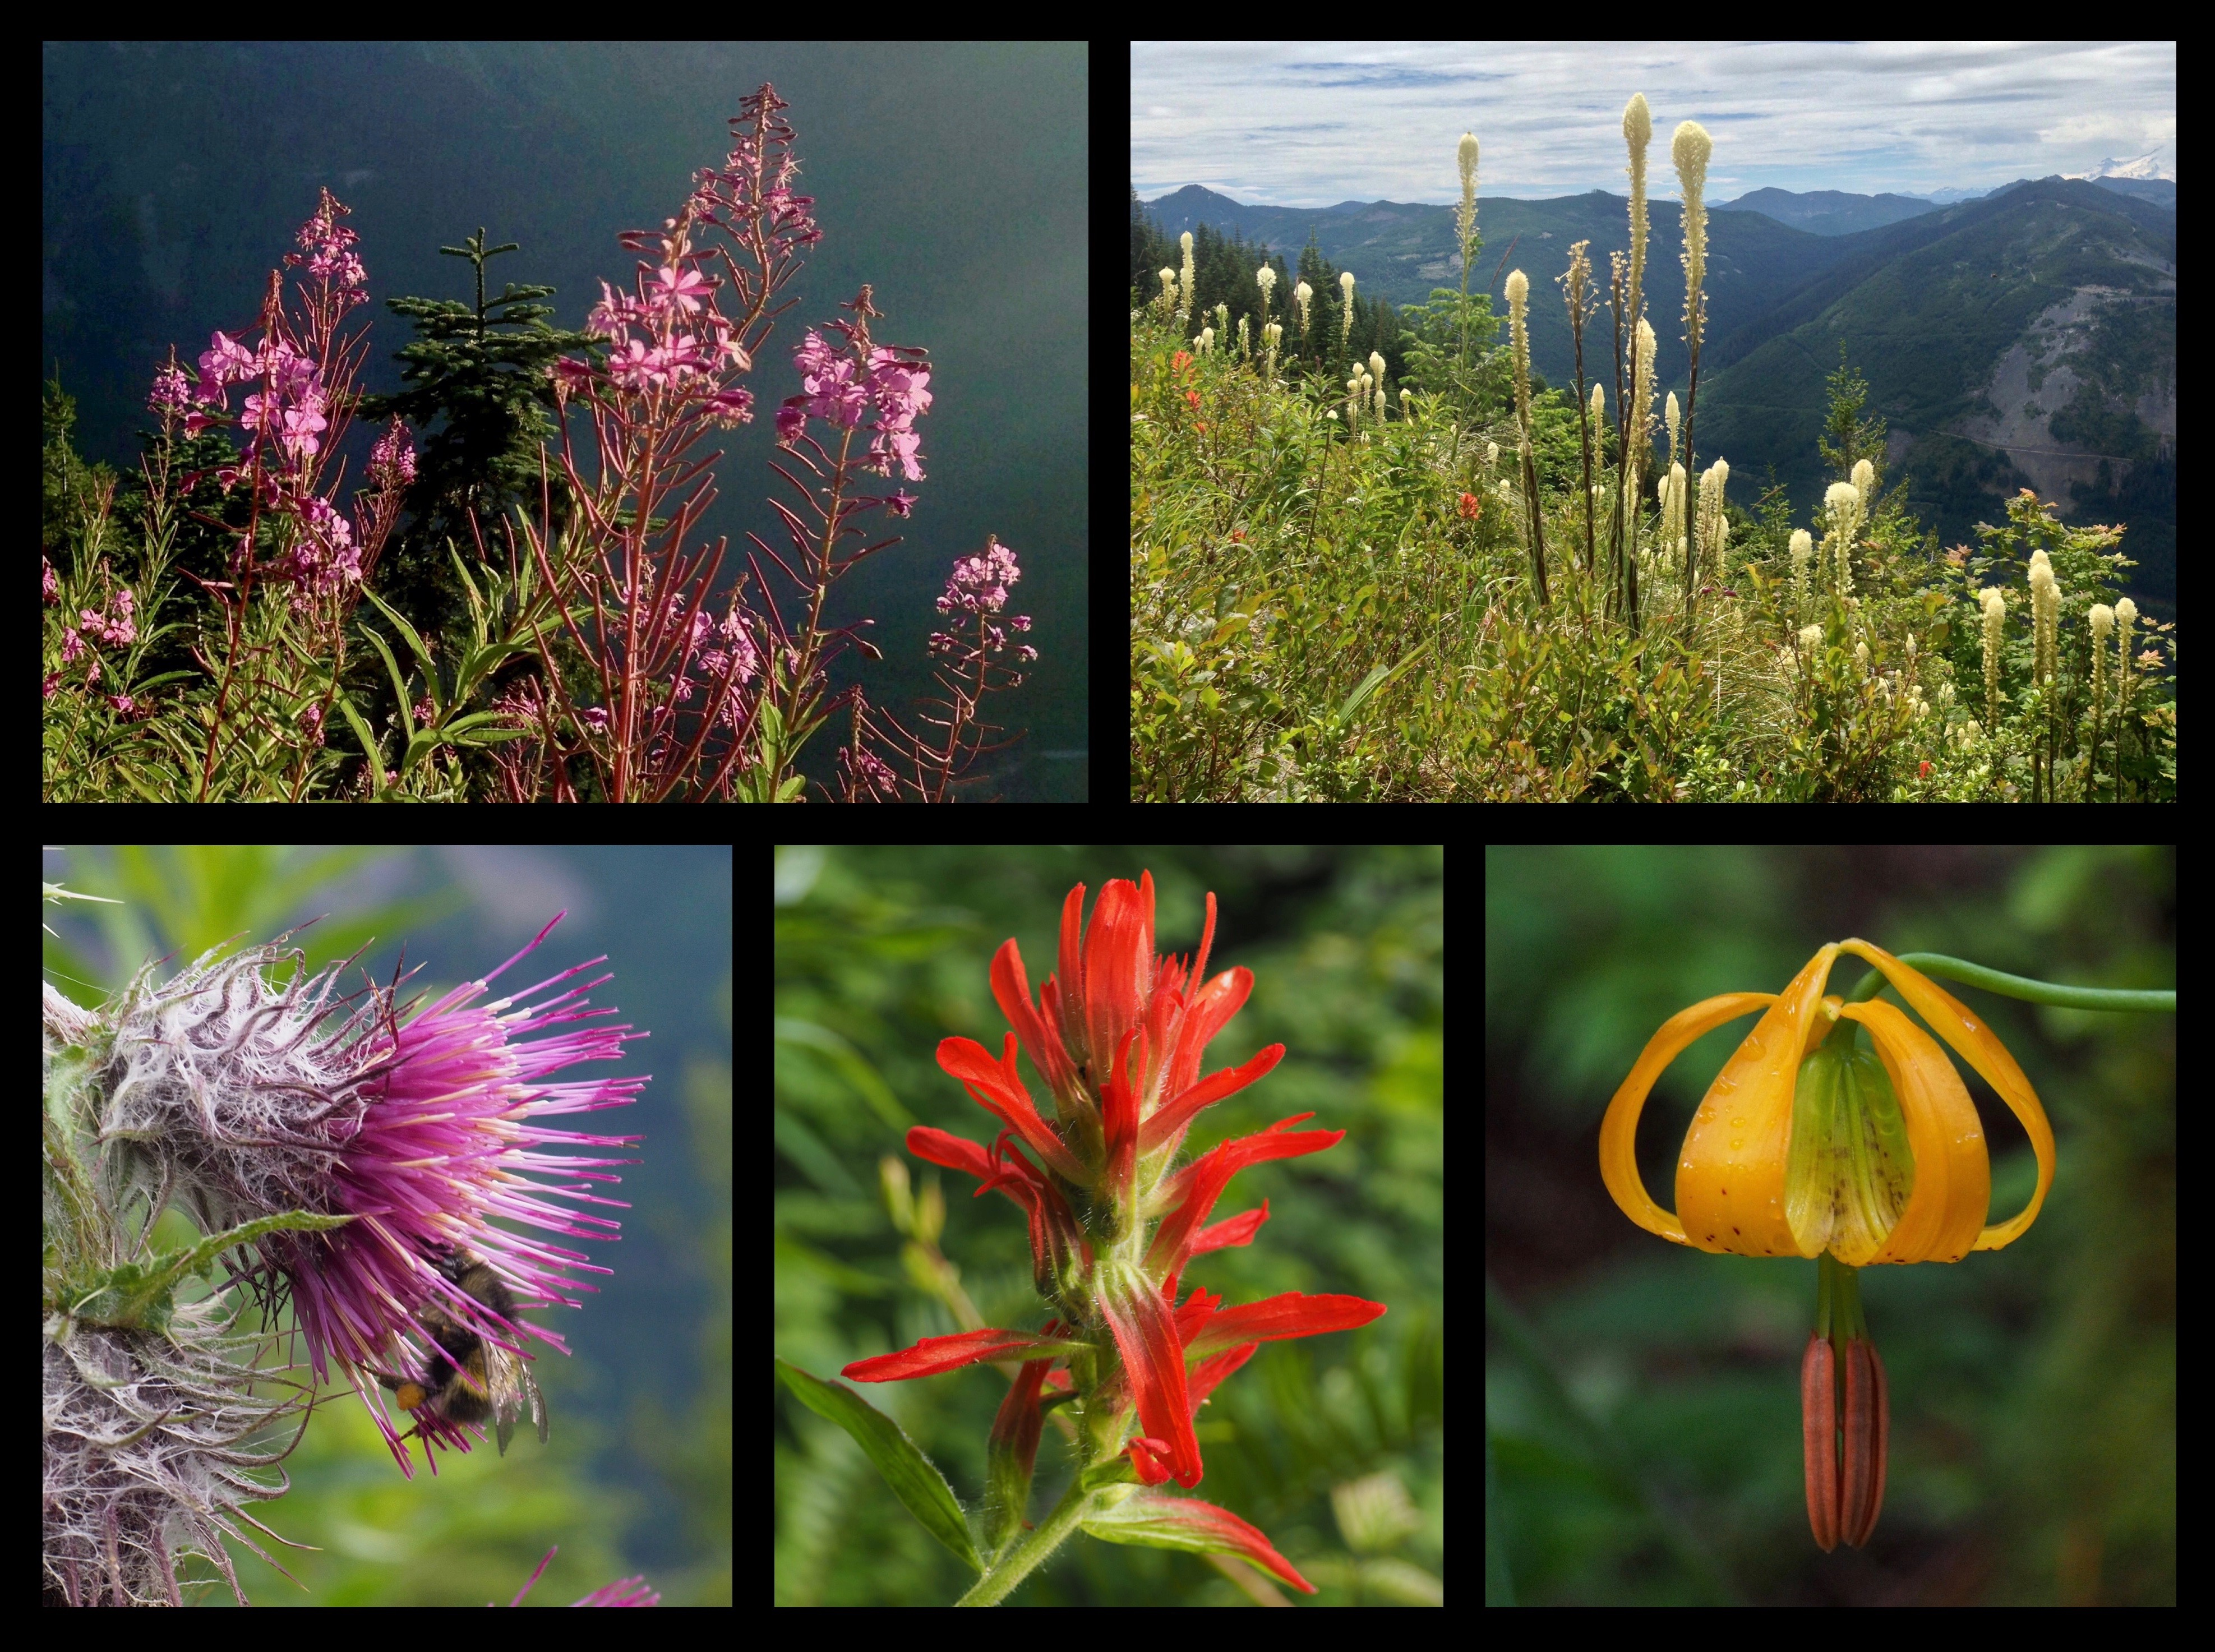 The Ira Spring Trail's switchbacks across Bandera Mountain's treeless middle slope offer a sampling of the riotous wildflower display that carpets its alpine meadow to the summit, including, clockwise from the top right, candle-like plumes of beargrass (Xerophyllum tenax), ever bowing teardrops of Columbia lilies (Lilium columbianum), vivid torches of scarlet paintbrushes (Castilleja miniata), and exotically bristled edible thistles (Cirsium edule). Later in the summer, willowy drifts of fireweed (Chamerion angustifolium) brighten the airy wayside (top left). To reach Bandera Mountain's summit, take the signed side trail at the corner of the Ira Spring Trail's last, long switchback across the mountainside. Ira Spring Trail, July 05, 2014, July 09, 2016, and August 18, 2013.